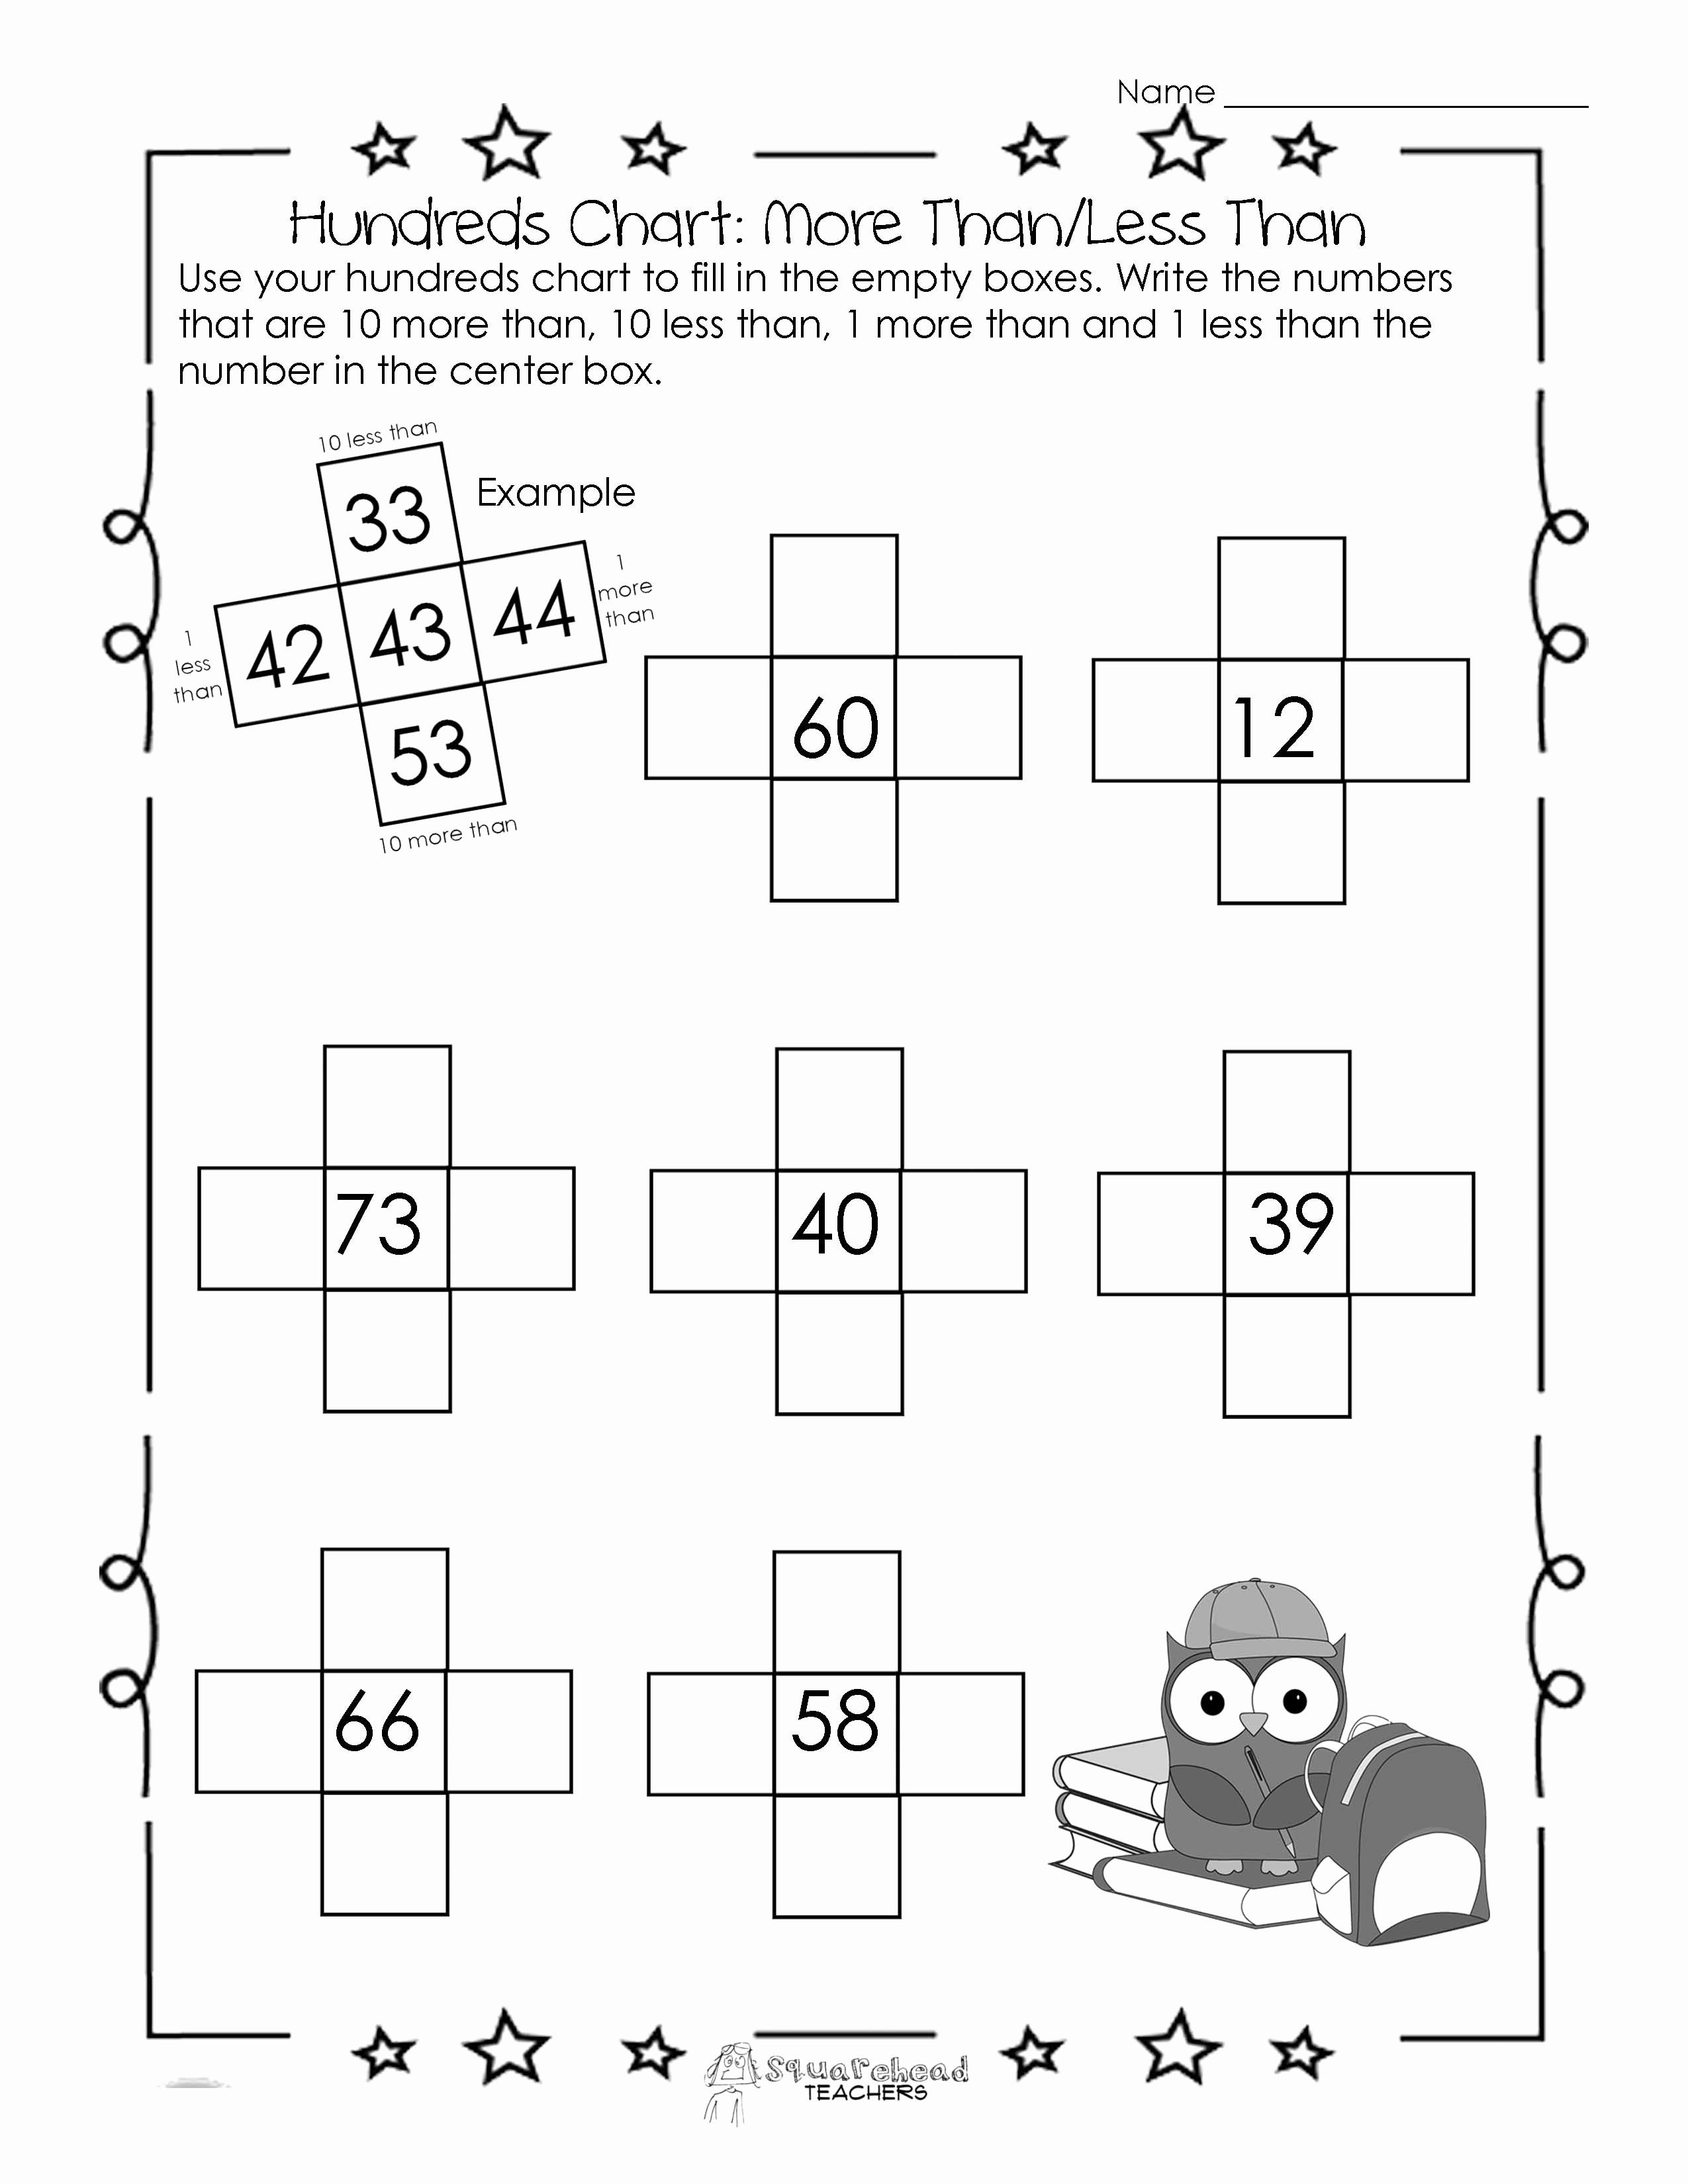 Ten More Ten Less Worksheet Inspirational Hundreds Chart Worksheet 10 More Than 10 Less Than